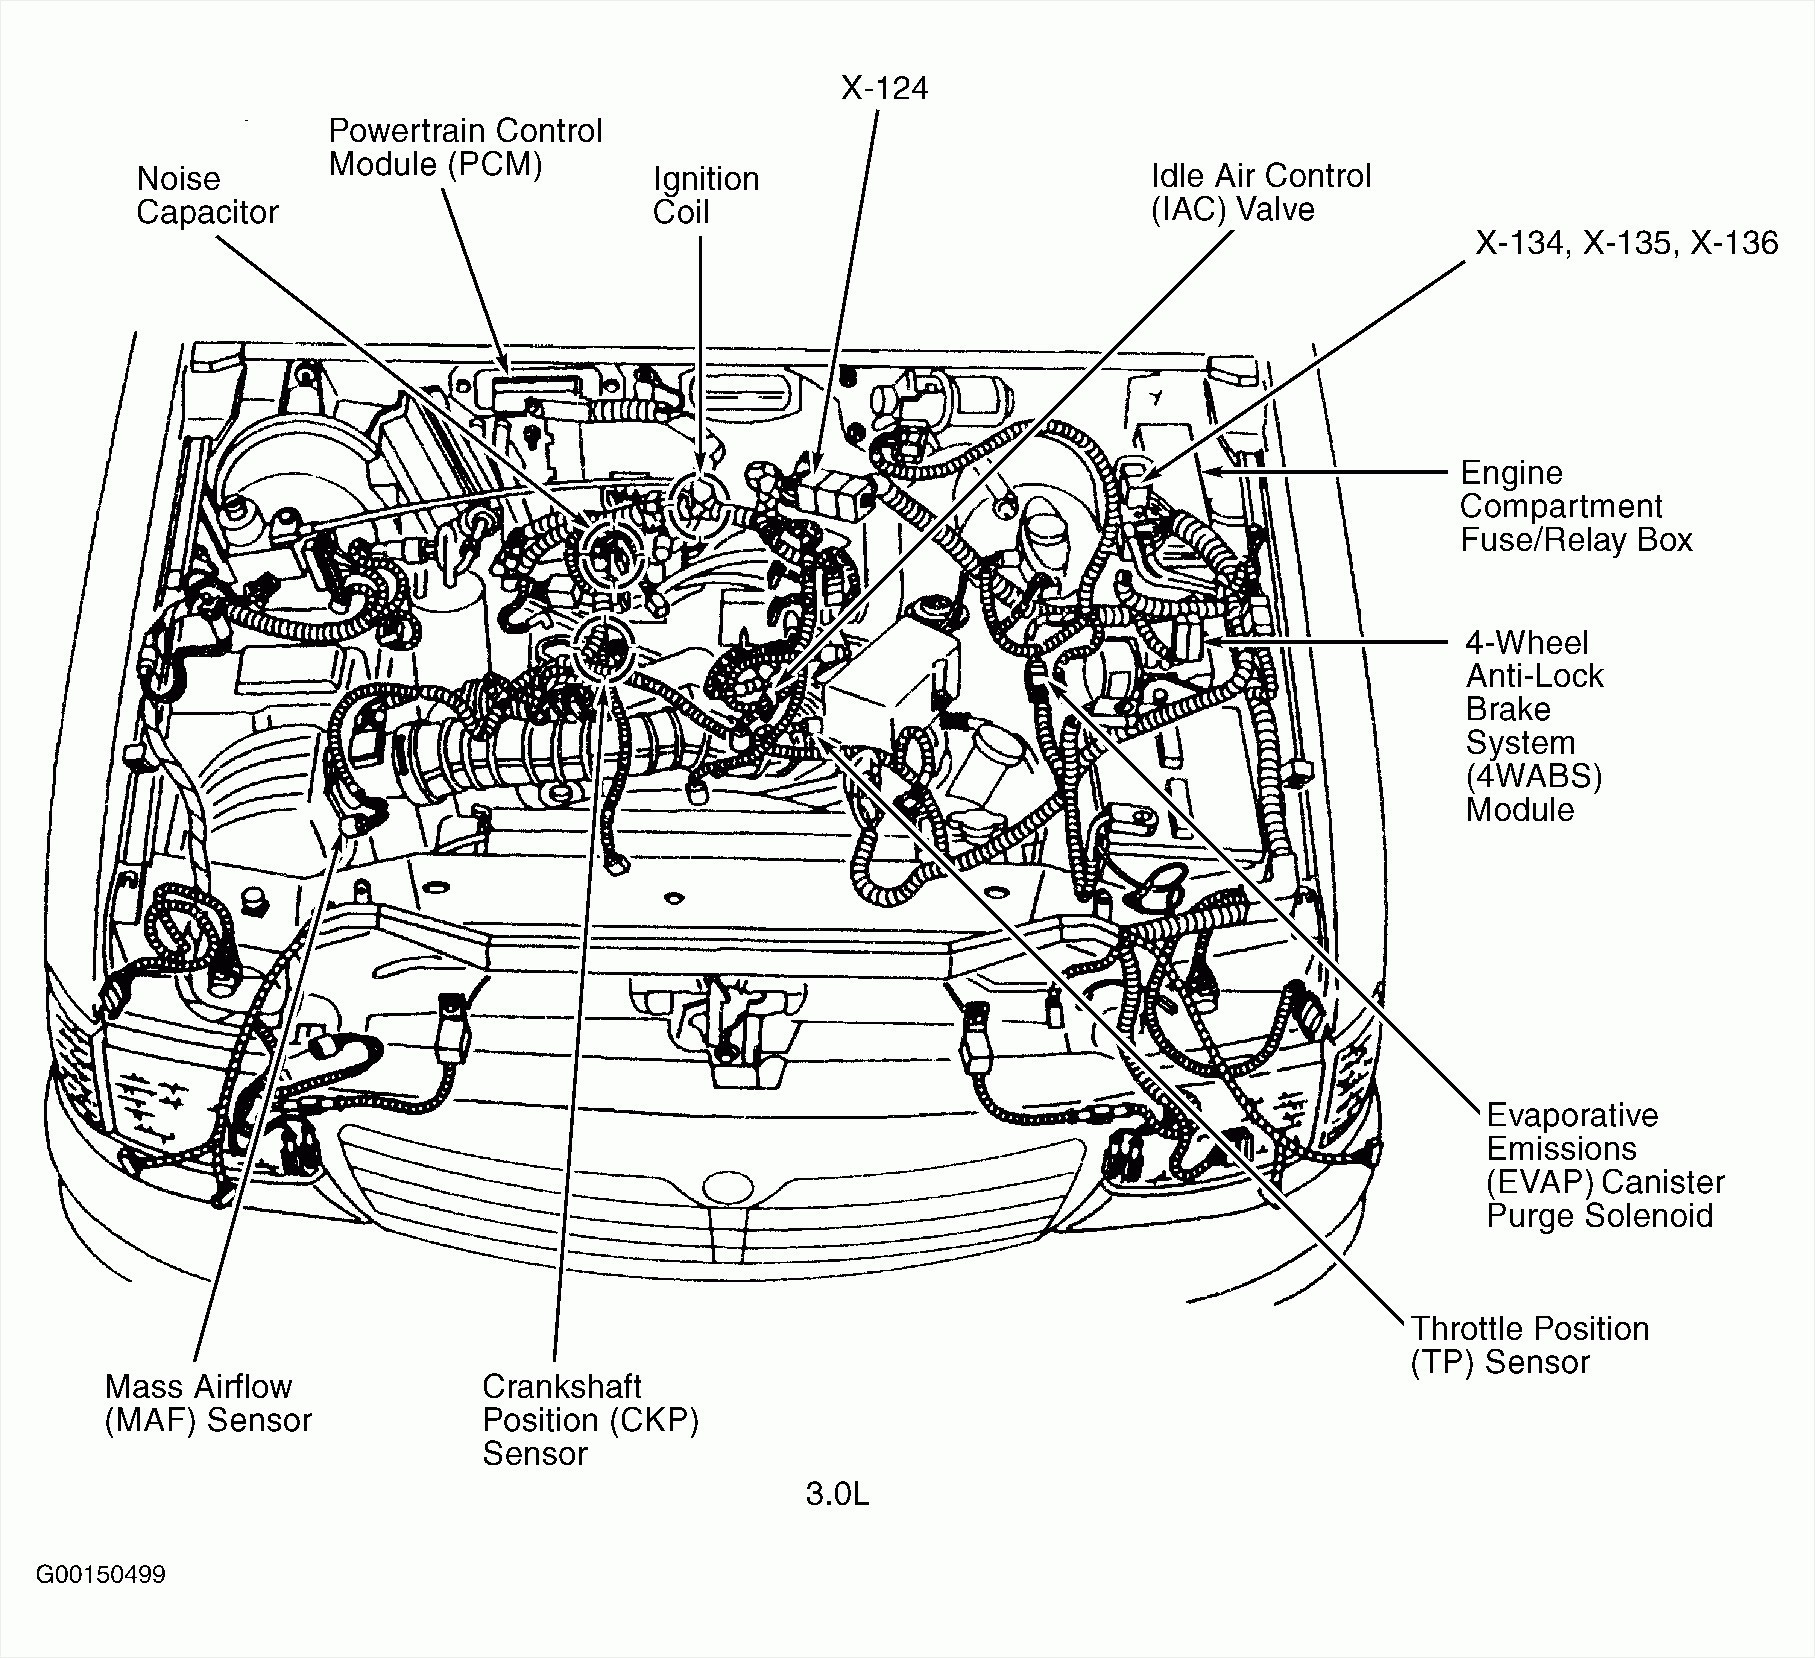 2002 s10 evap wiring diagram